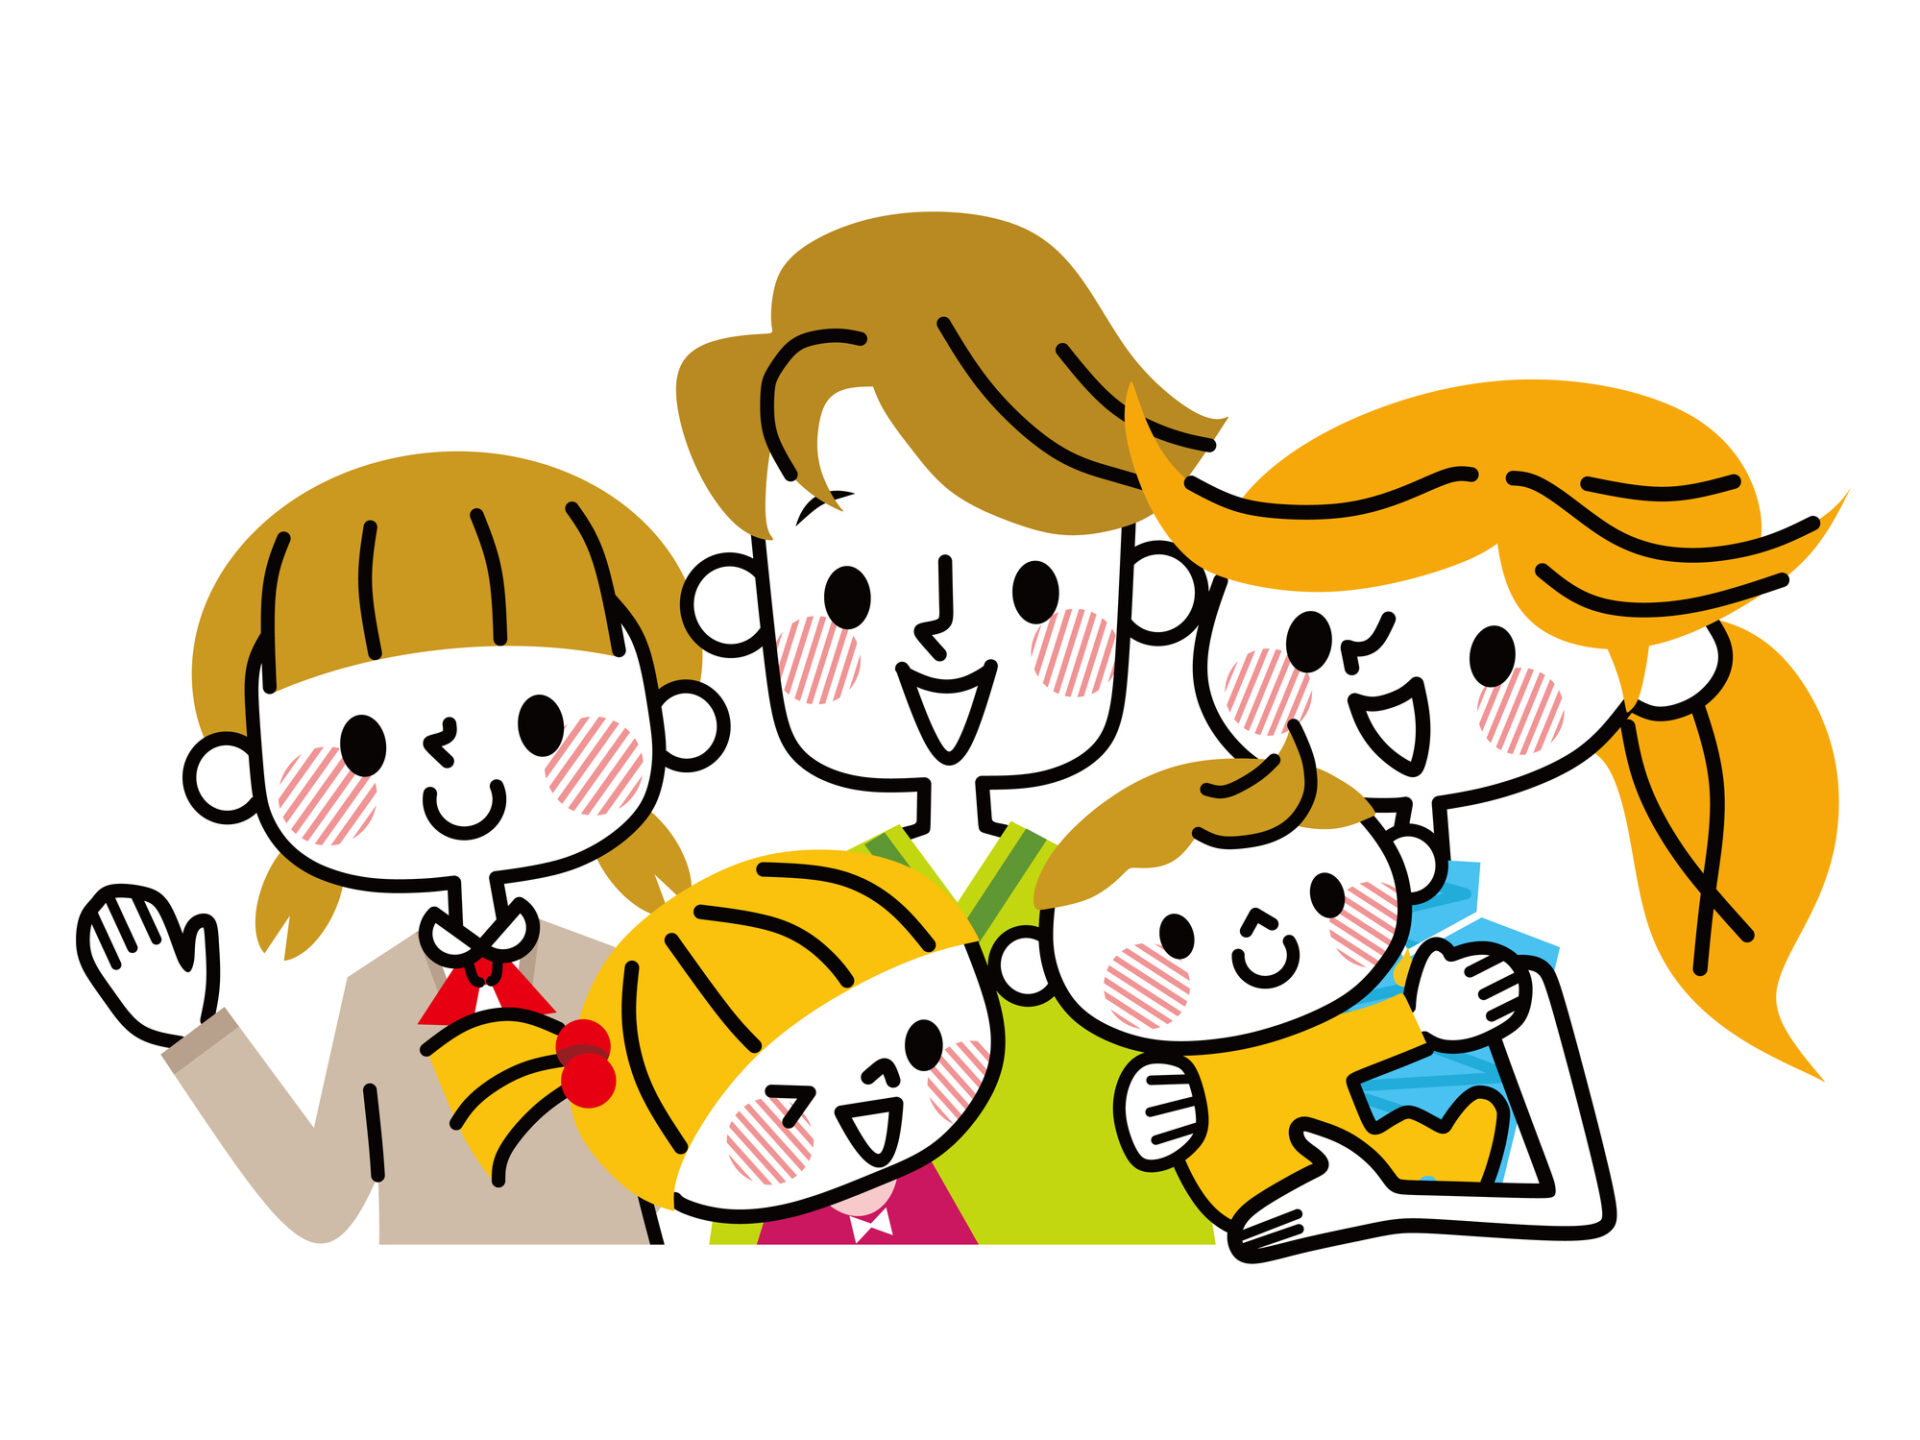 Illustration of family. / A family with a smile.